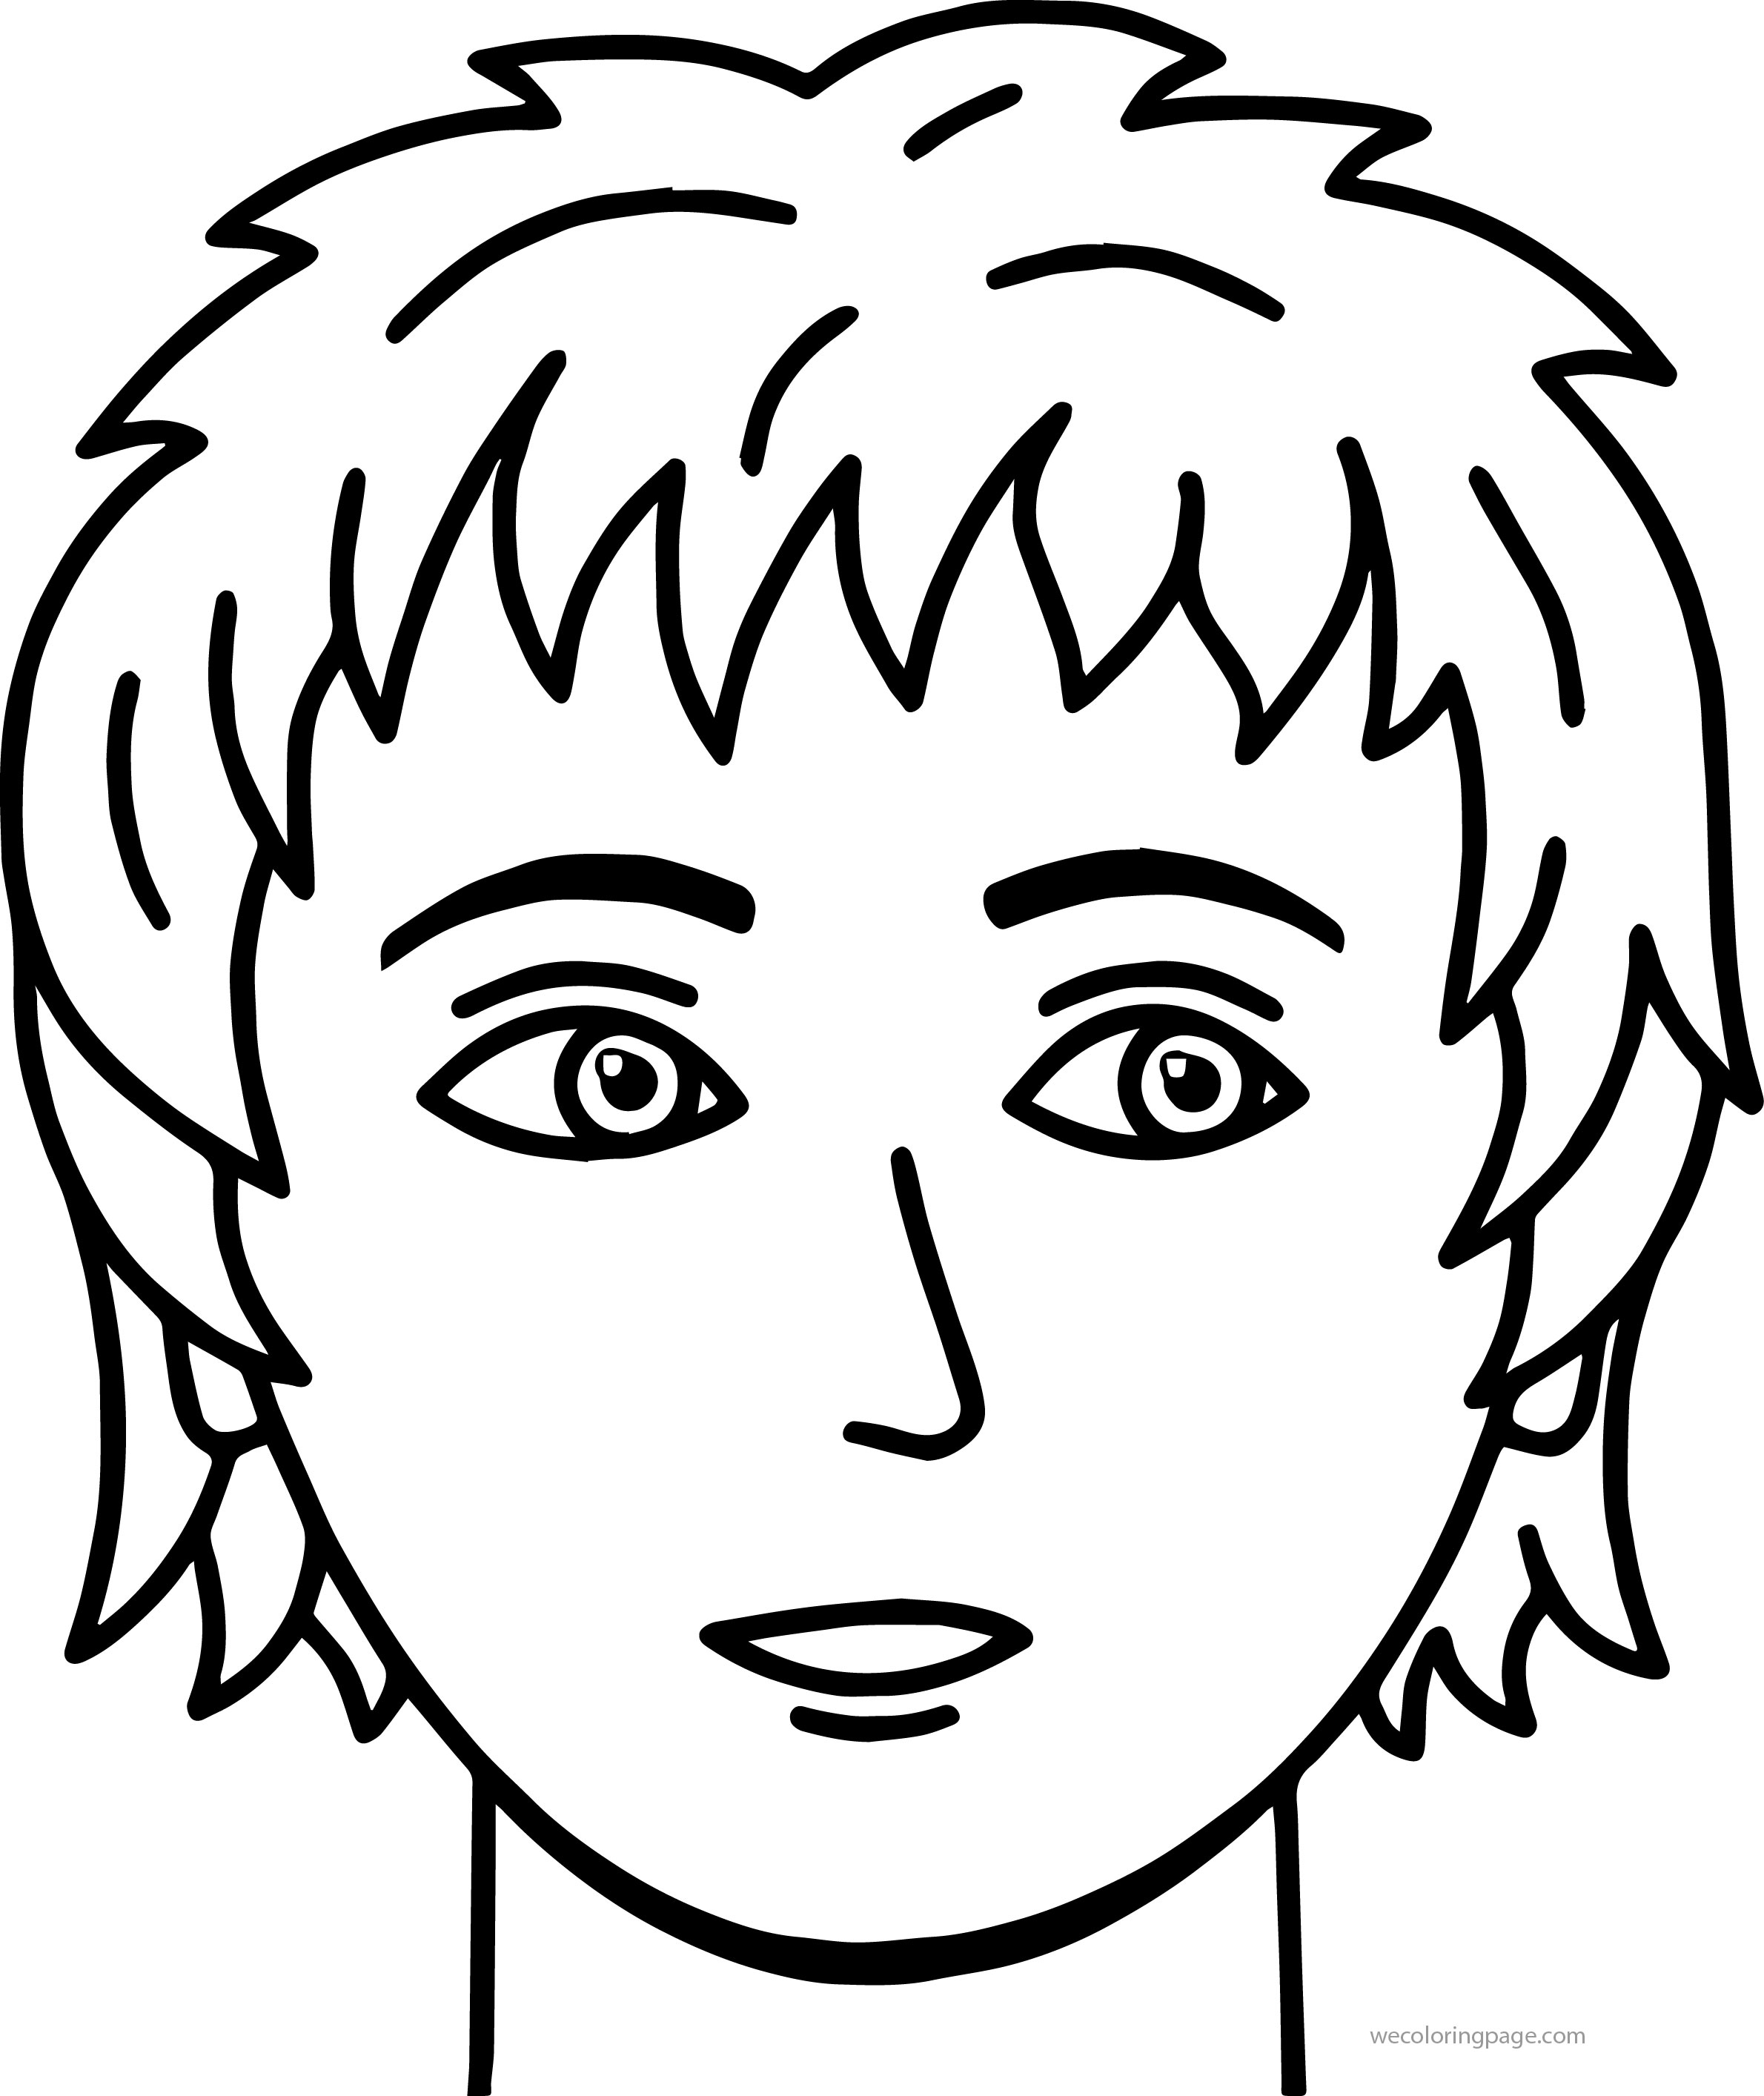 2380x2828 Face Coloring Pages Collection Free Coloring Sheets